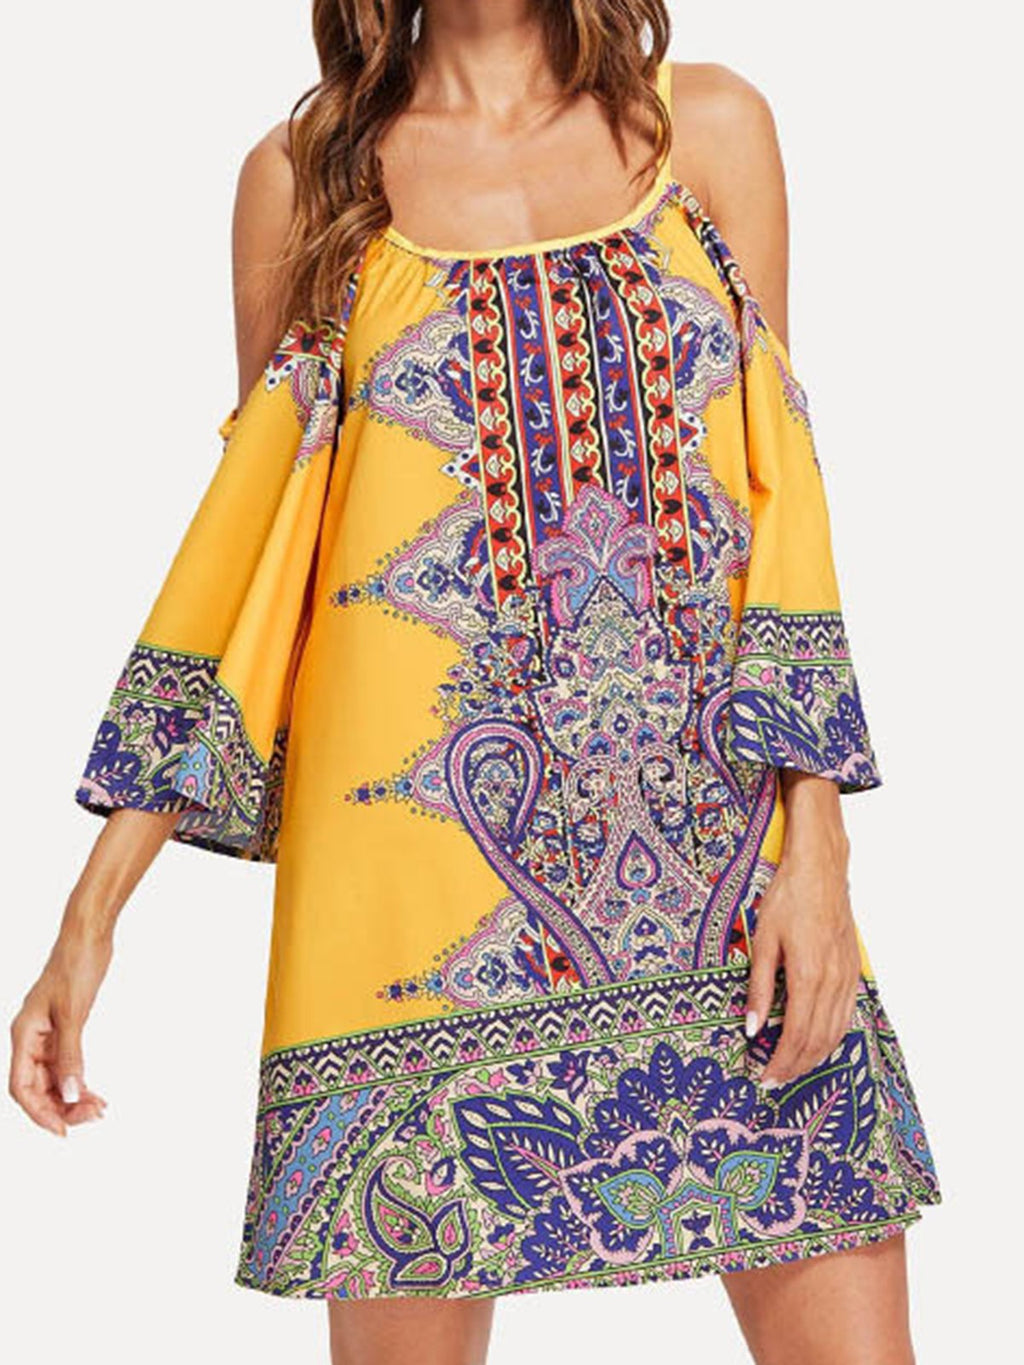 Spaghetti Cold Shoulder Resort Midi Dresses Beachwear